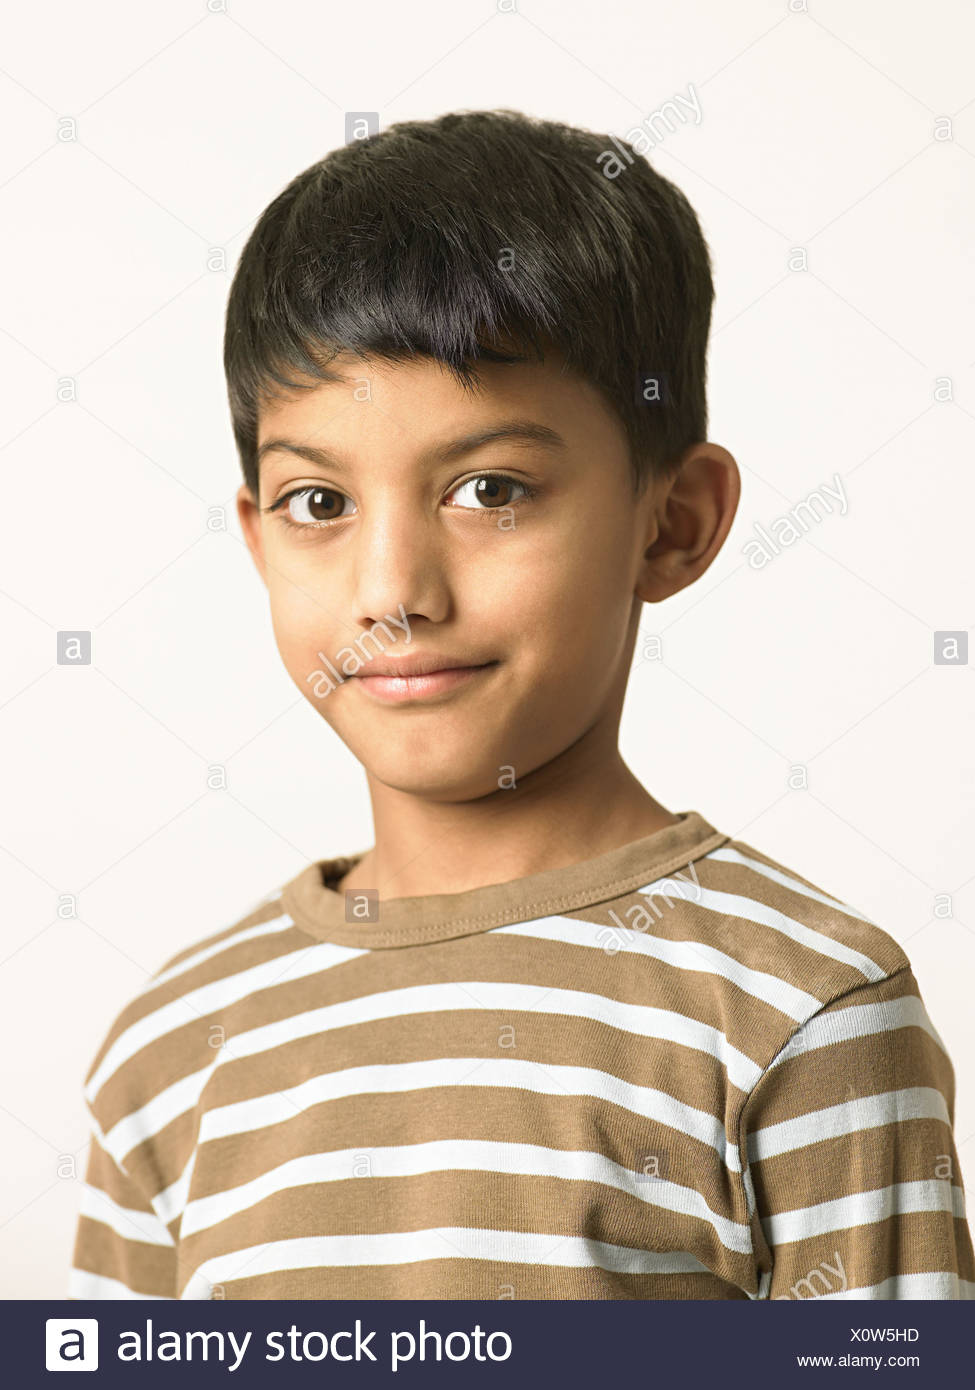 Portrait of an indian boy - Stock Image